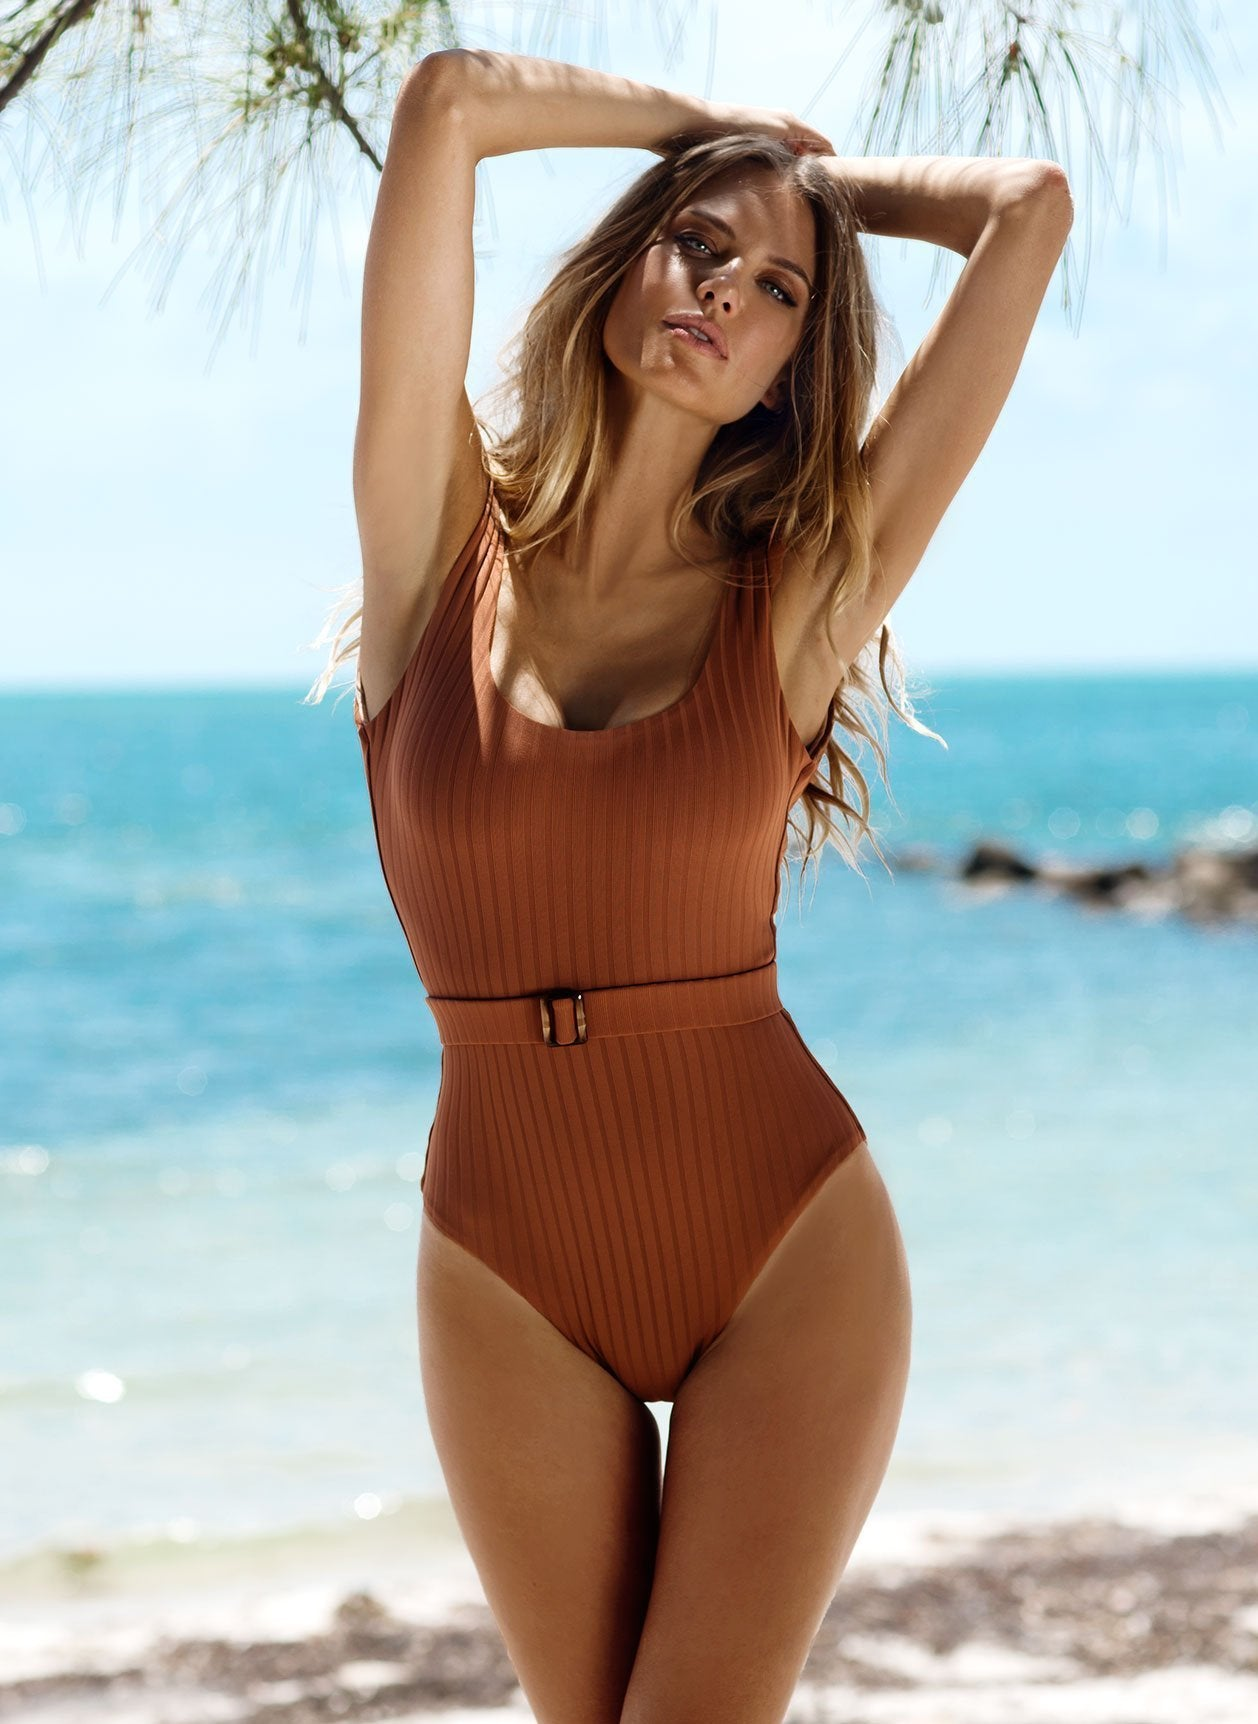 Texas Ribbed Coco Swimsuit Lifestyle